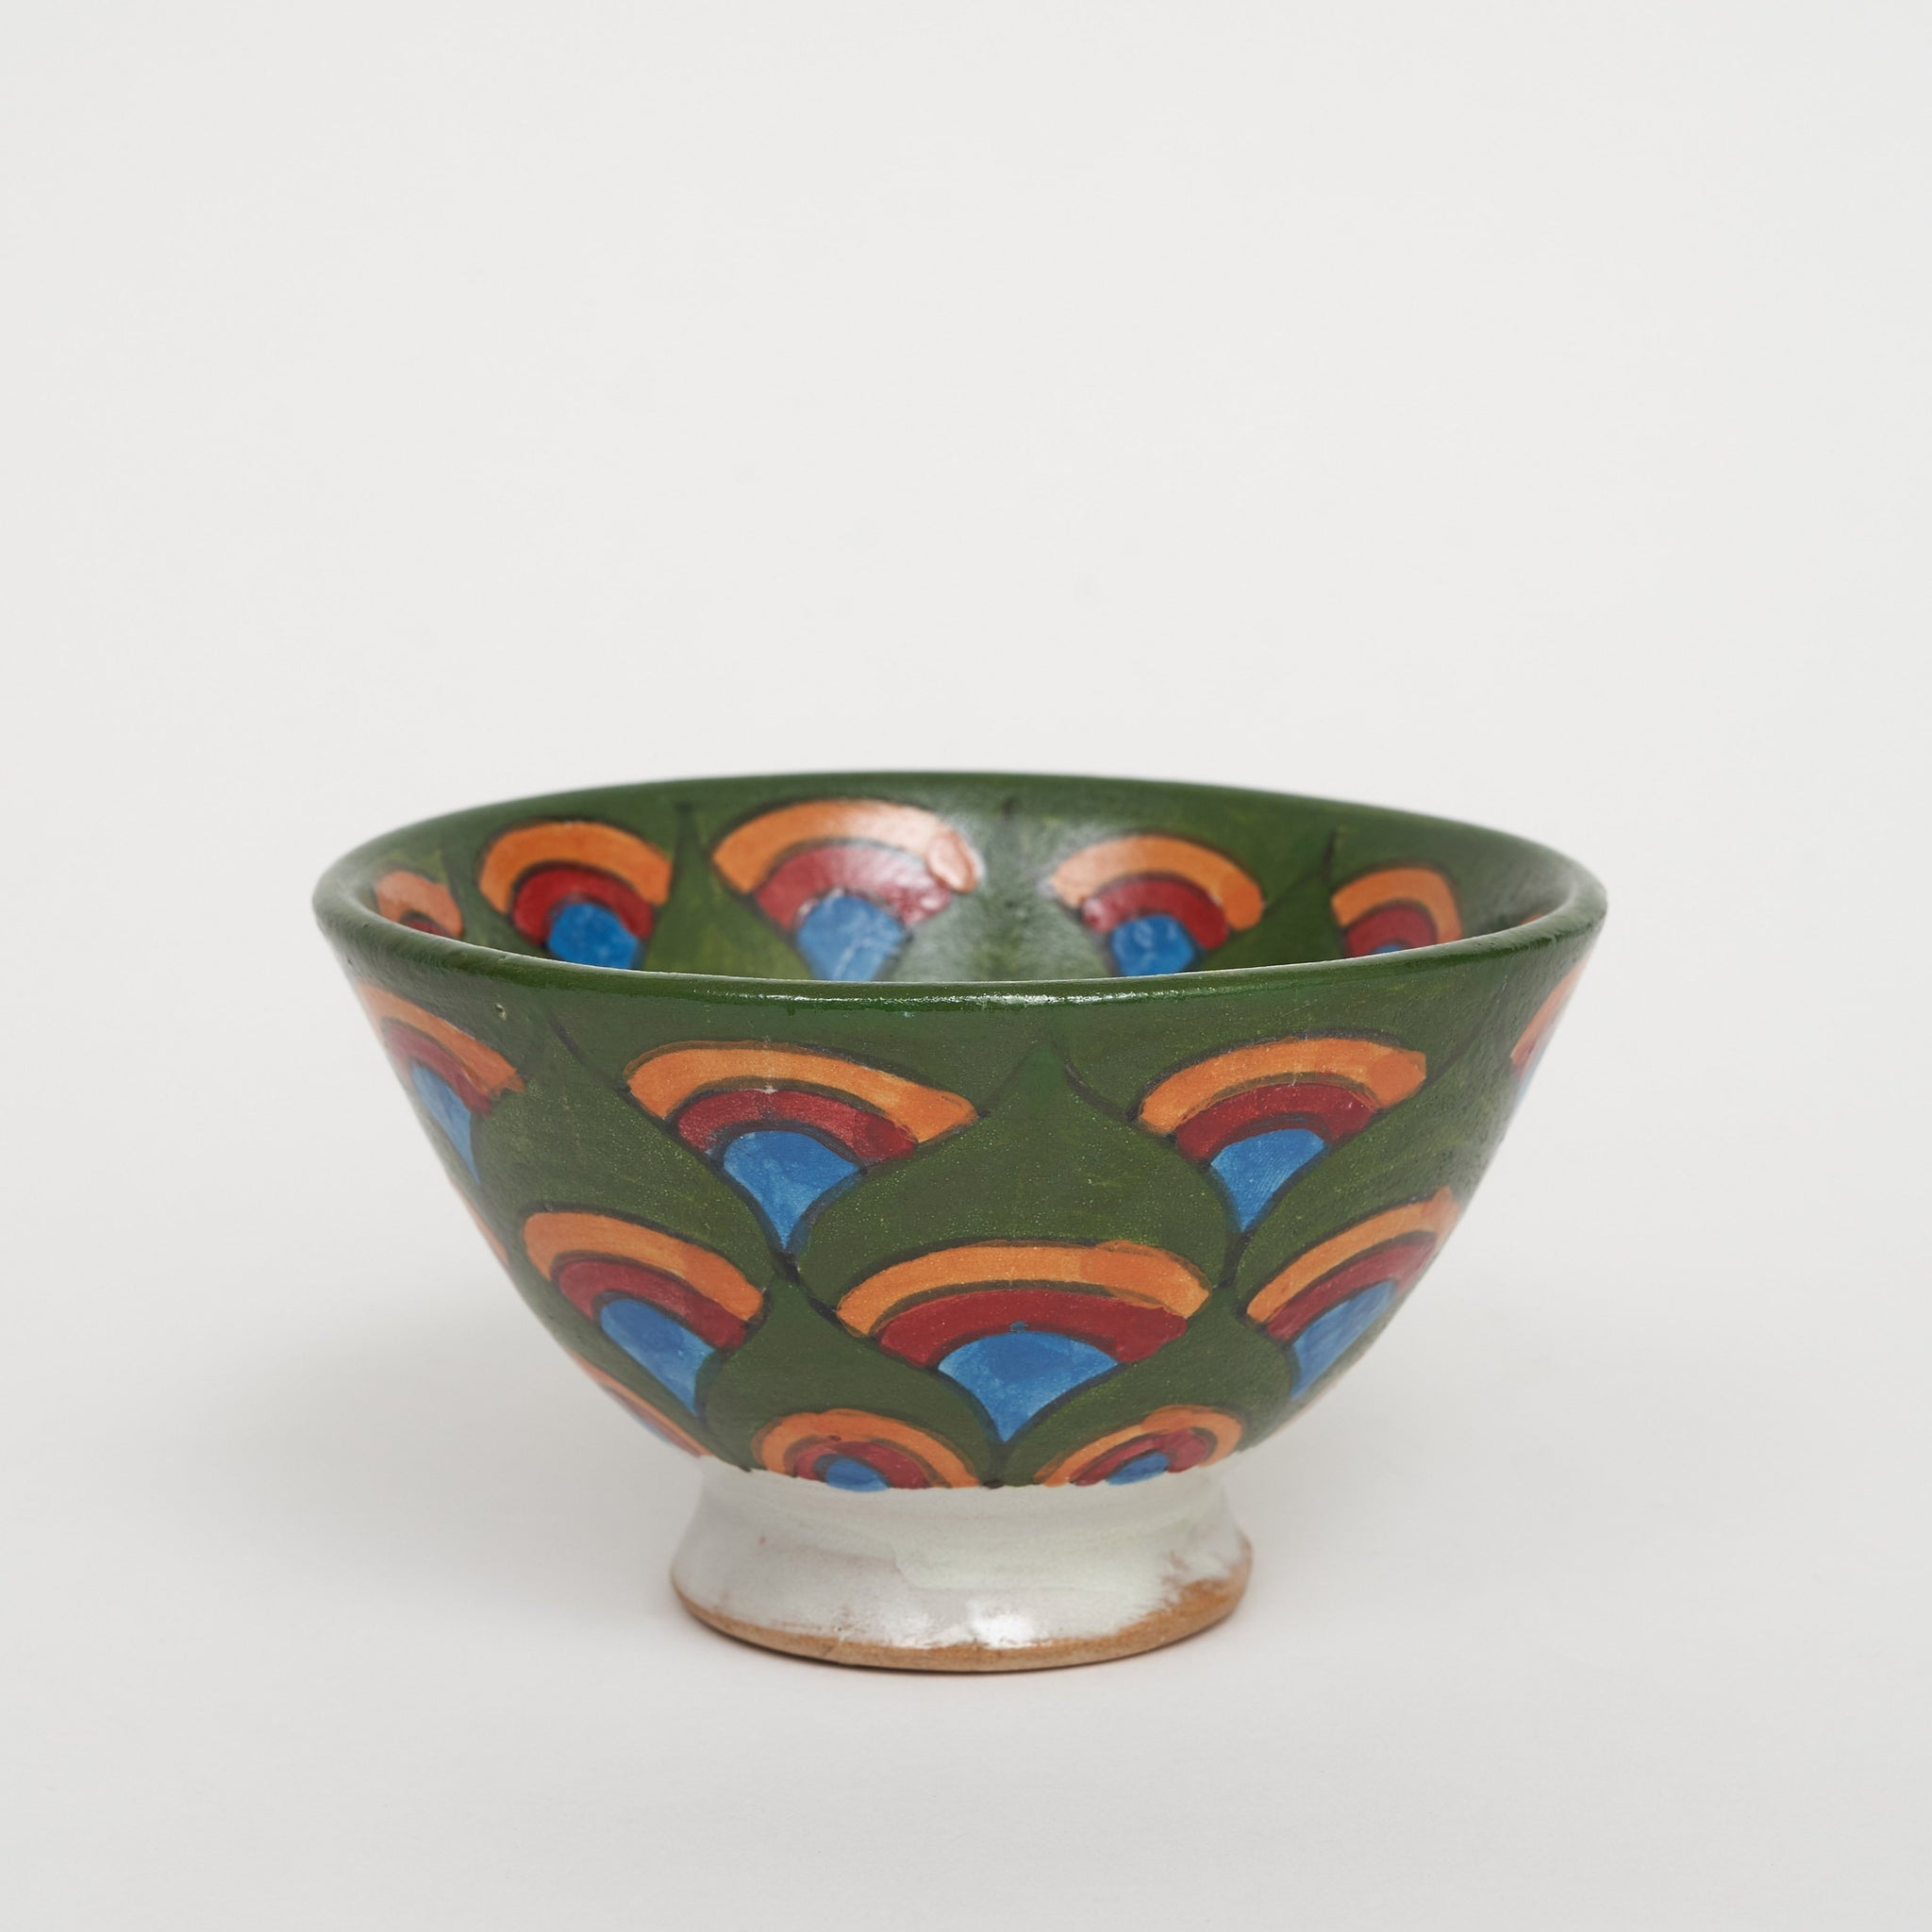 Painted Bowl in Green